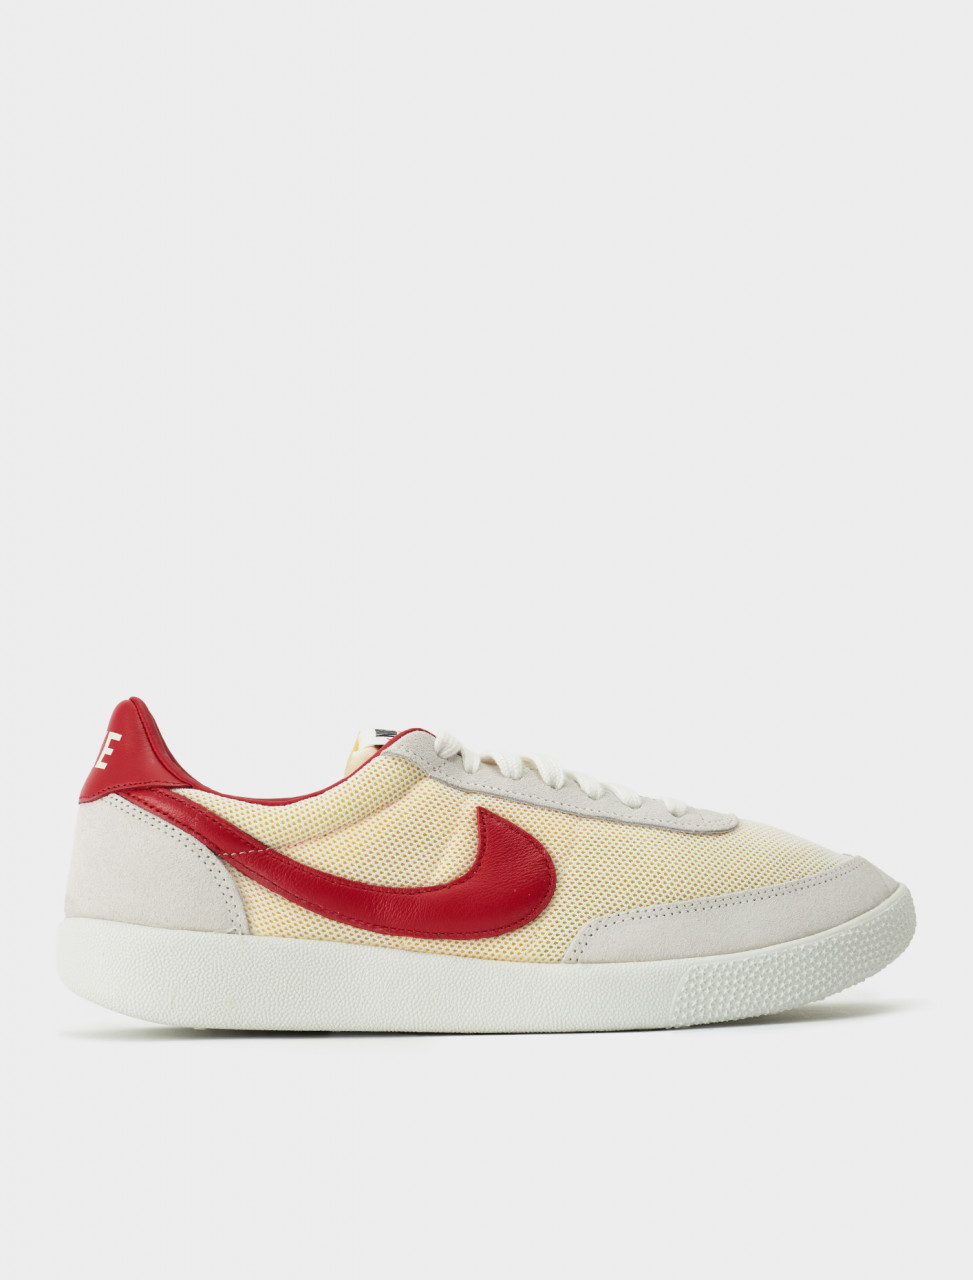 Nike Killshot OG SP Sneaker in Sail & Gym Red